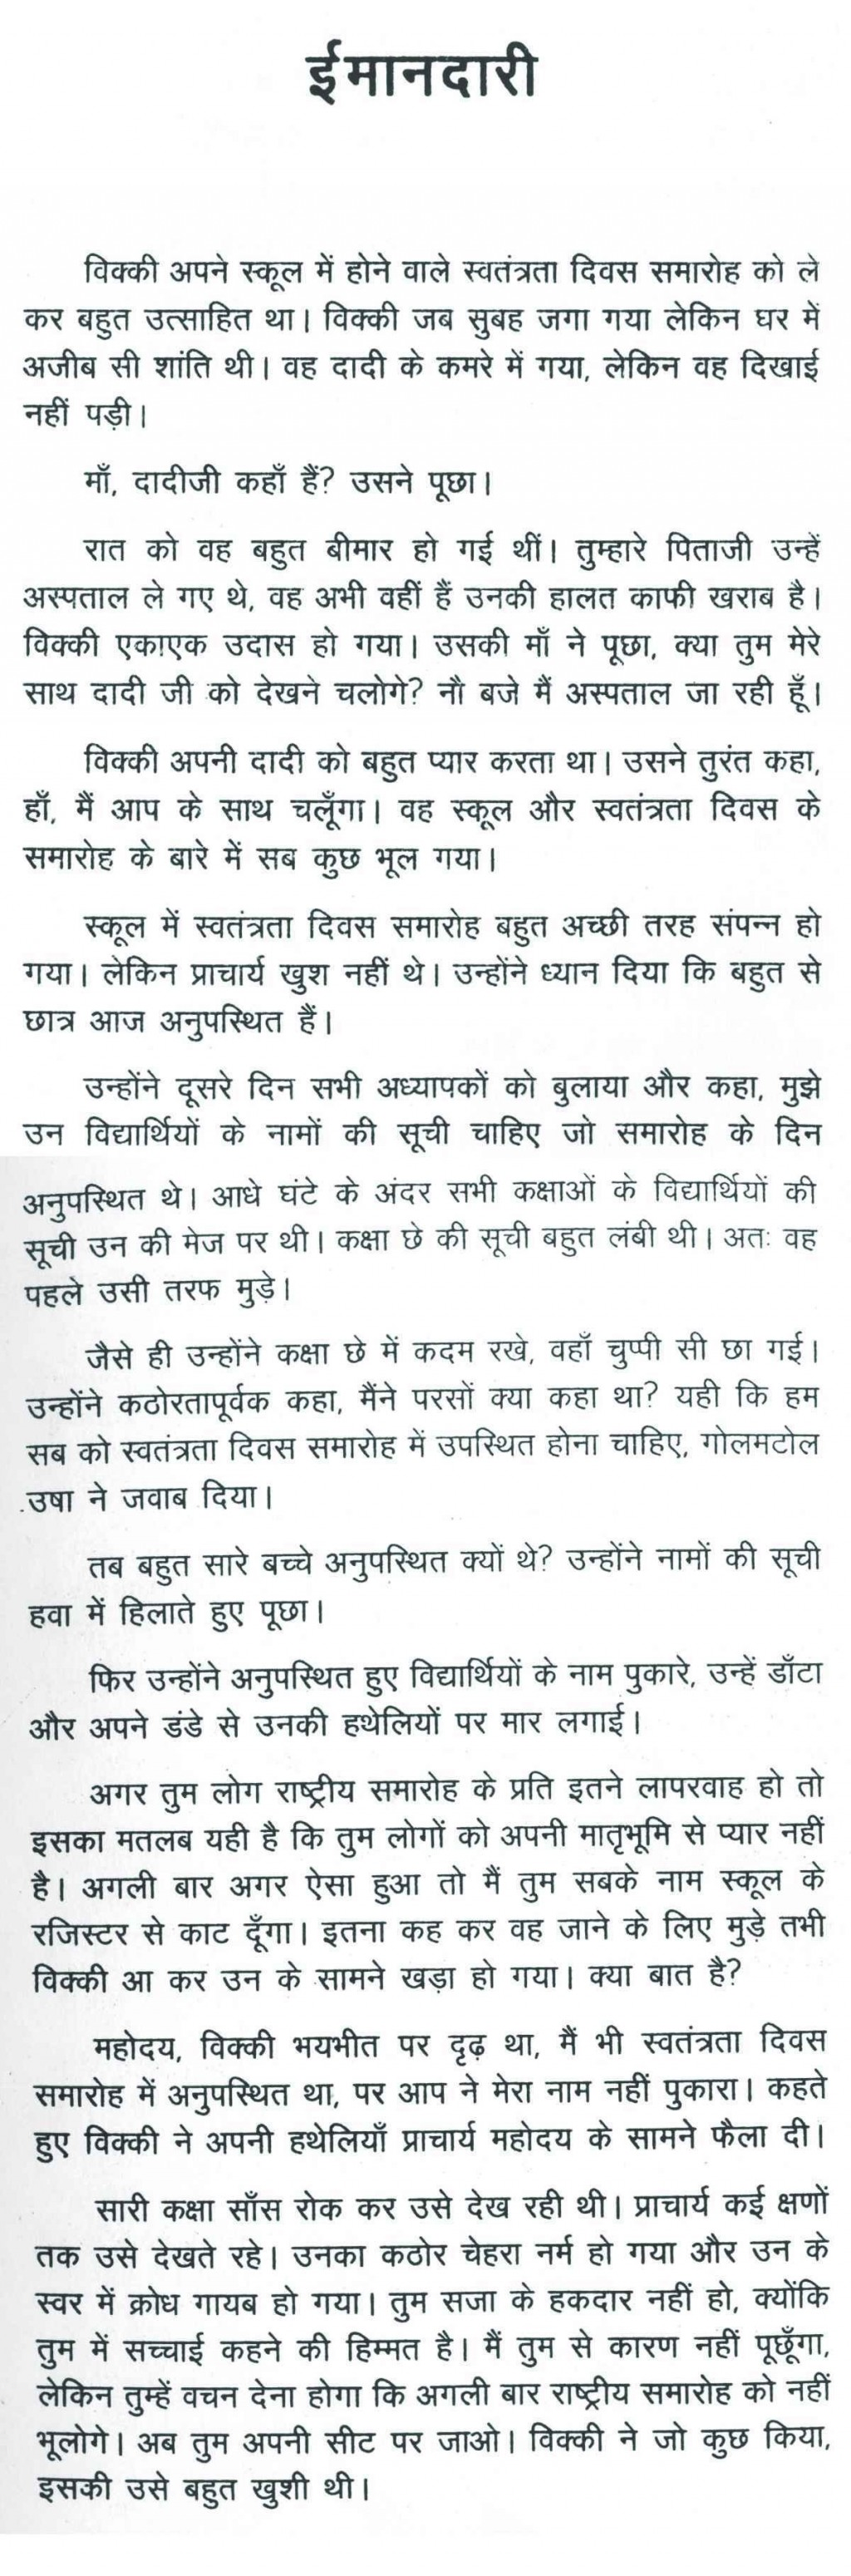 007 10037 Thumb Essay Of Honesty Astounding Is The Only Way To Success On Best Policy For Class 8 In Hindi Large